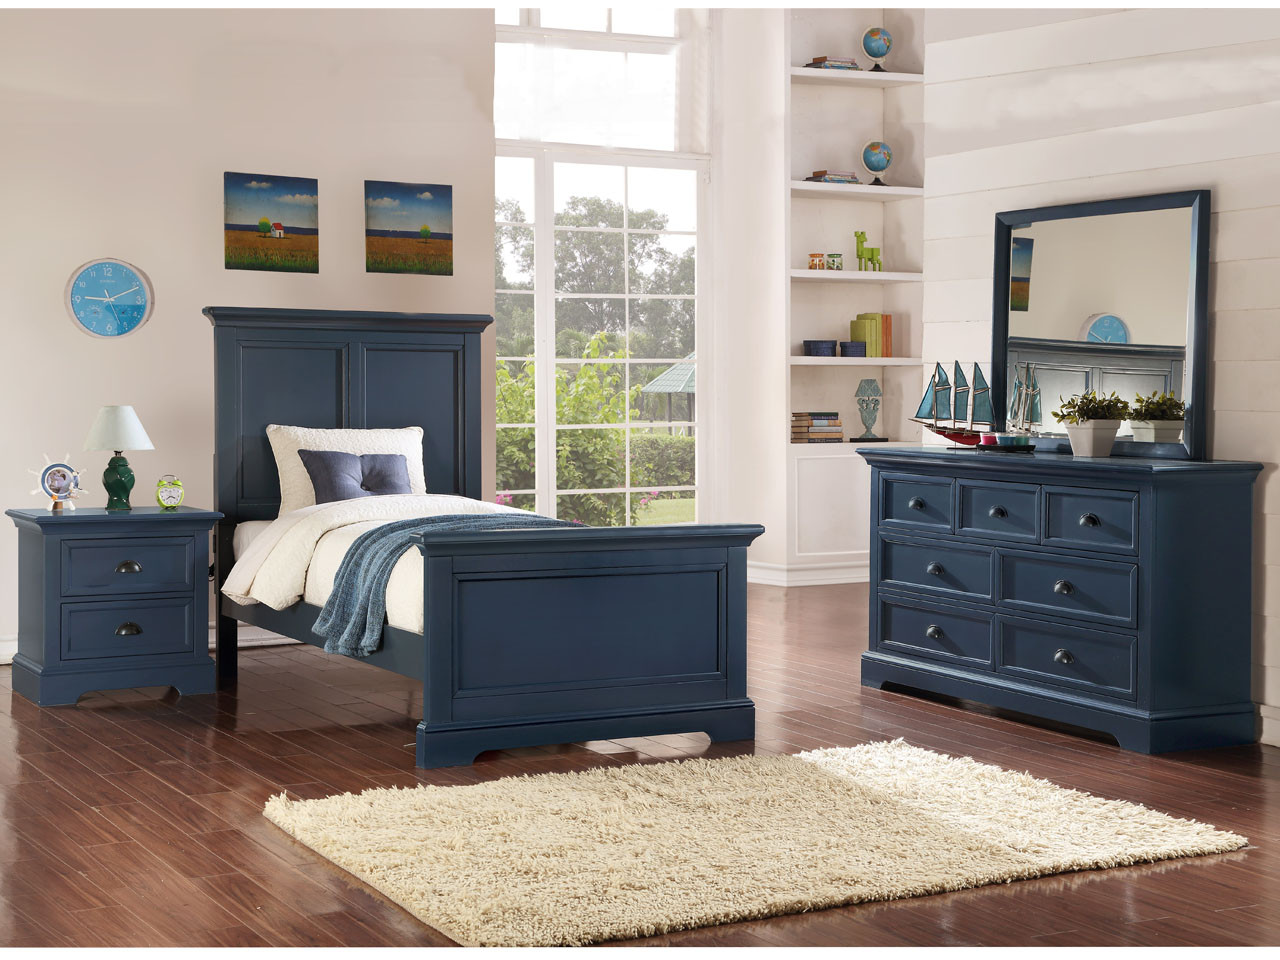 Tamarack blue panel bed: twin or full size